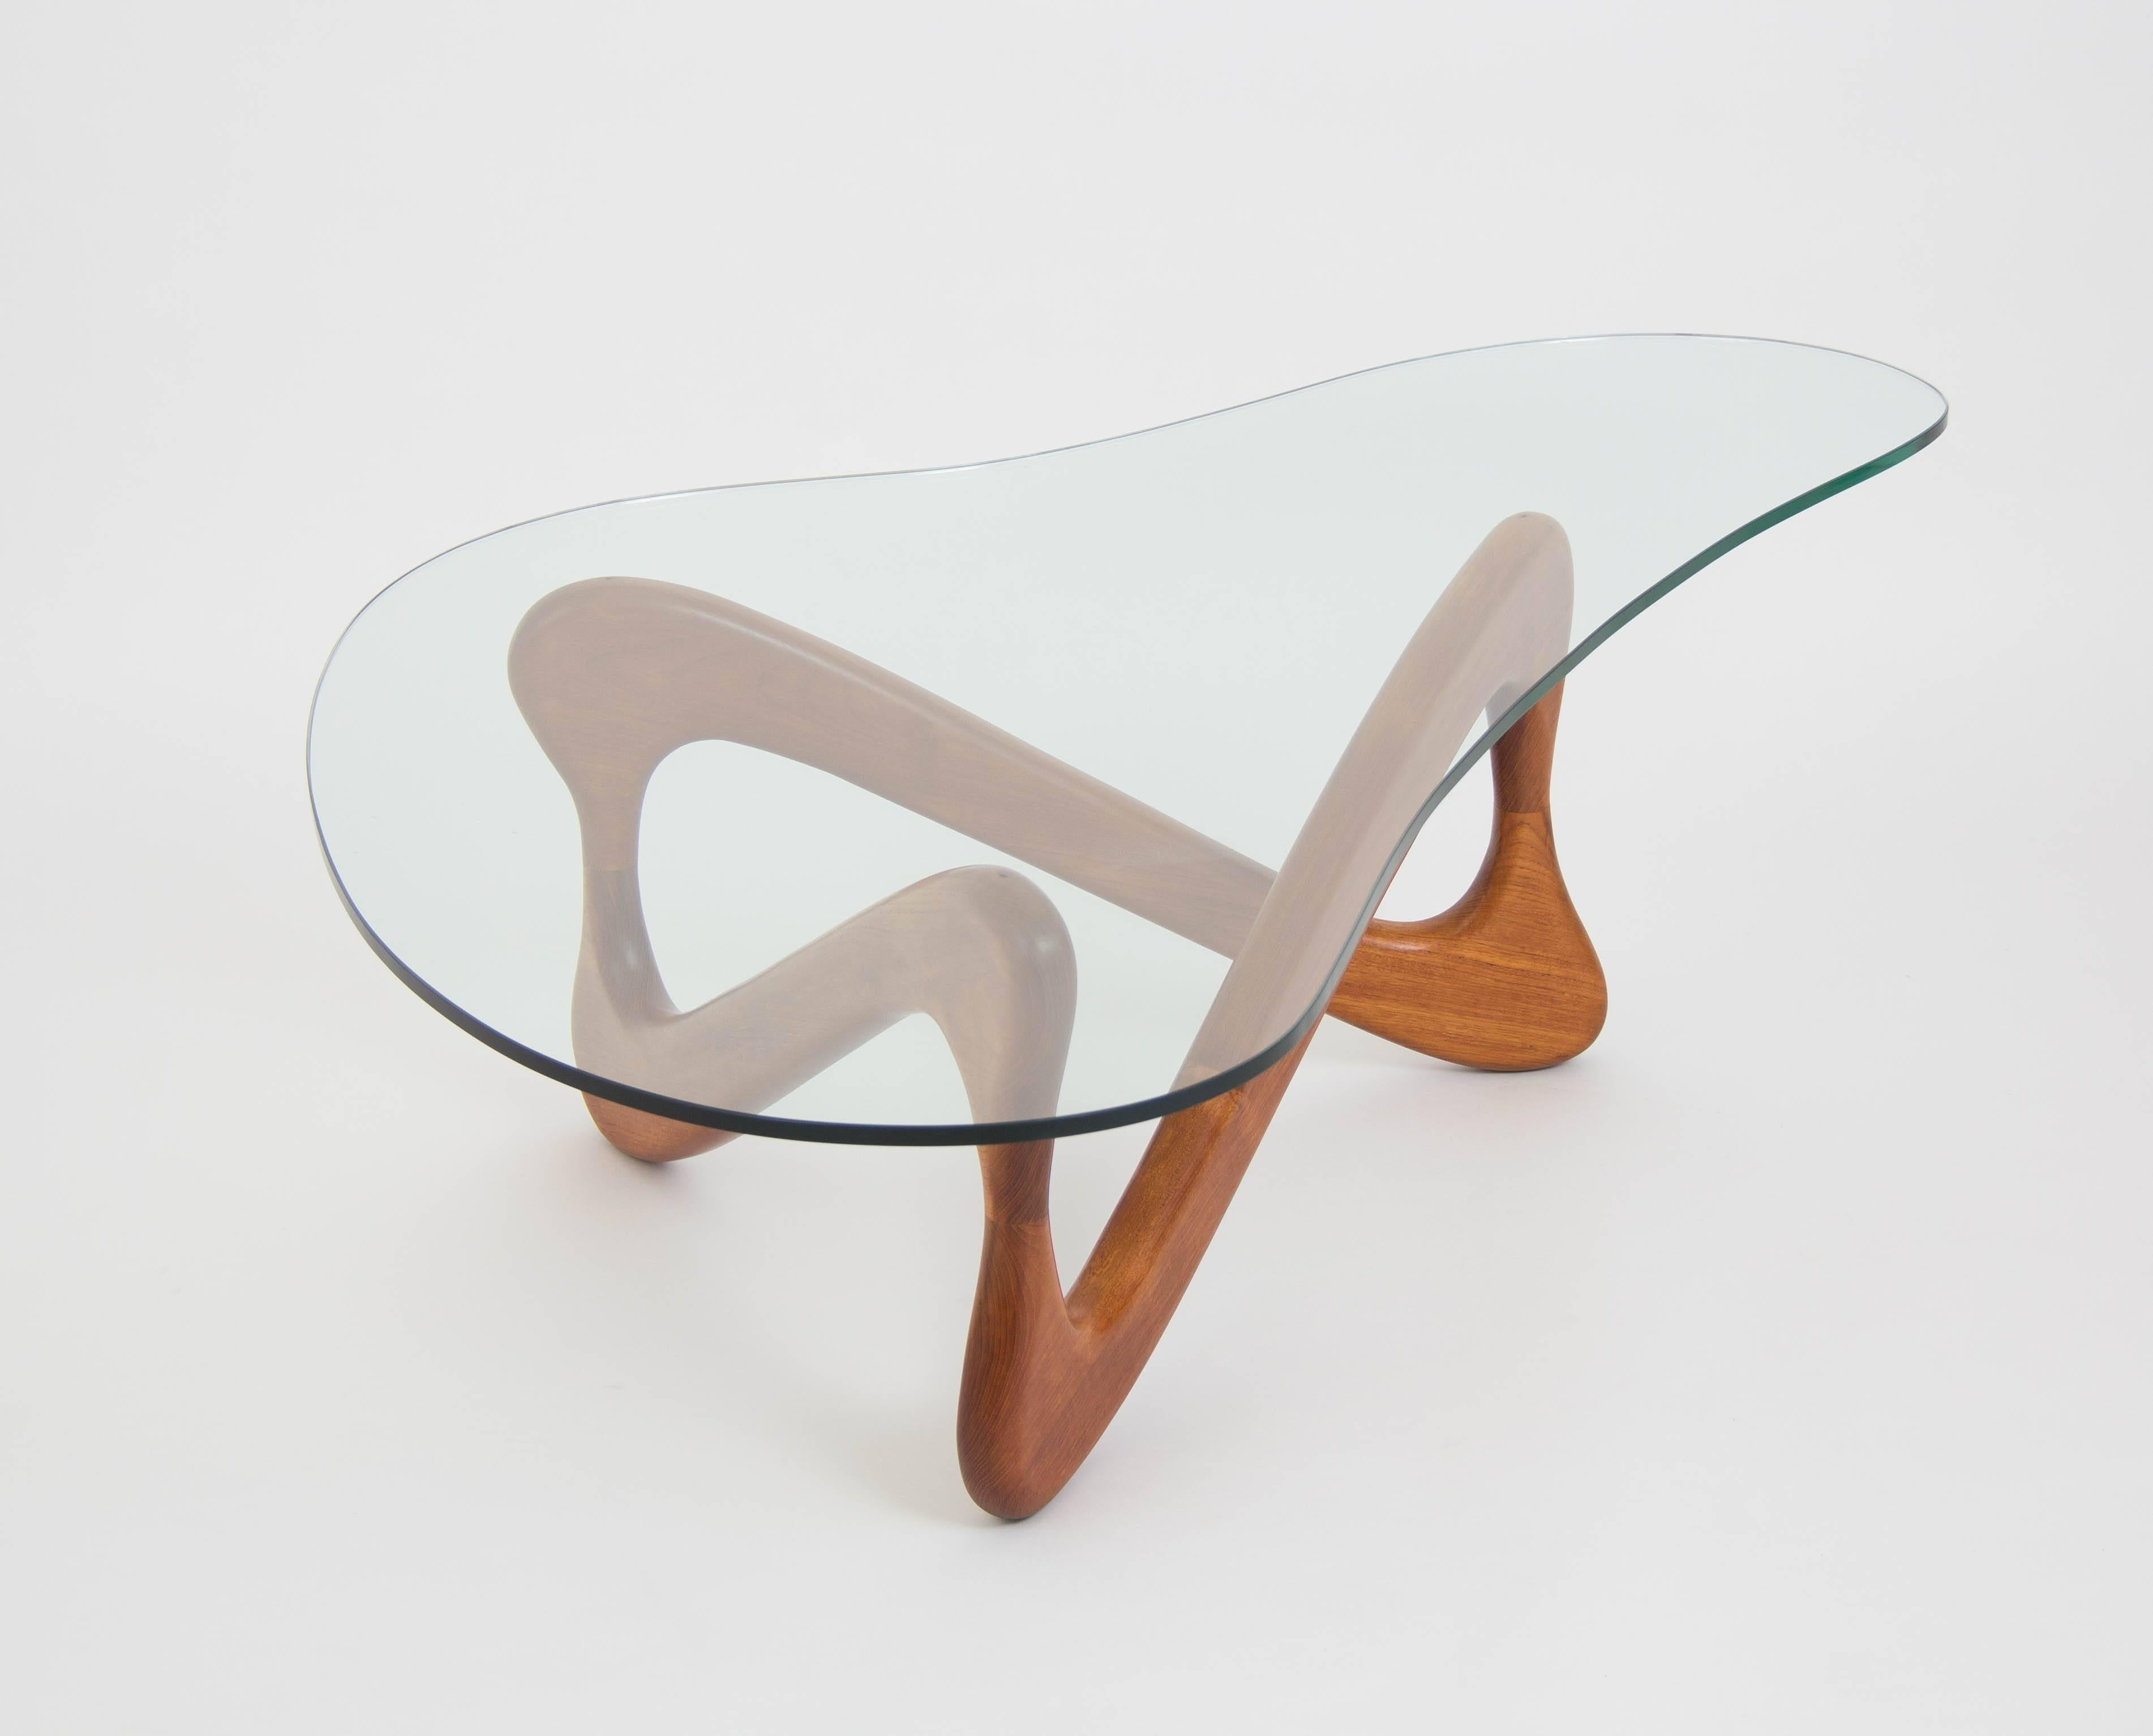 20th Century Biomorphic Glass Coffee Table With Wooden Loop Base For Sale